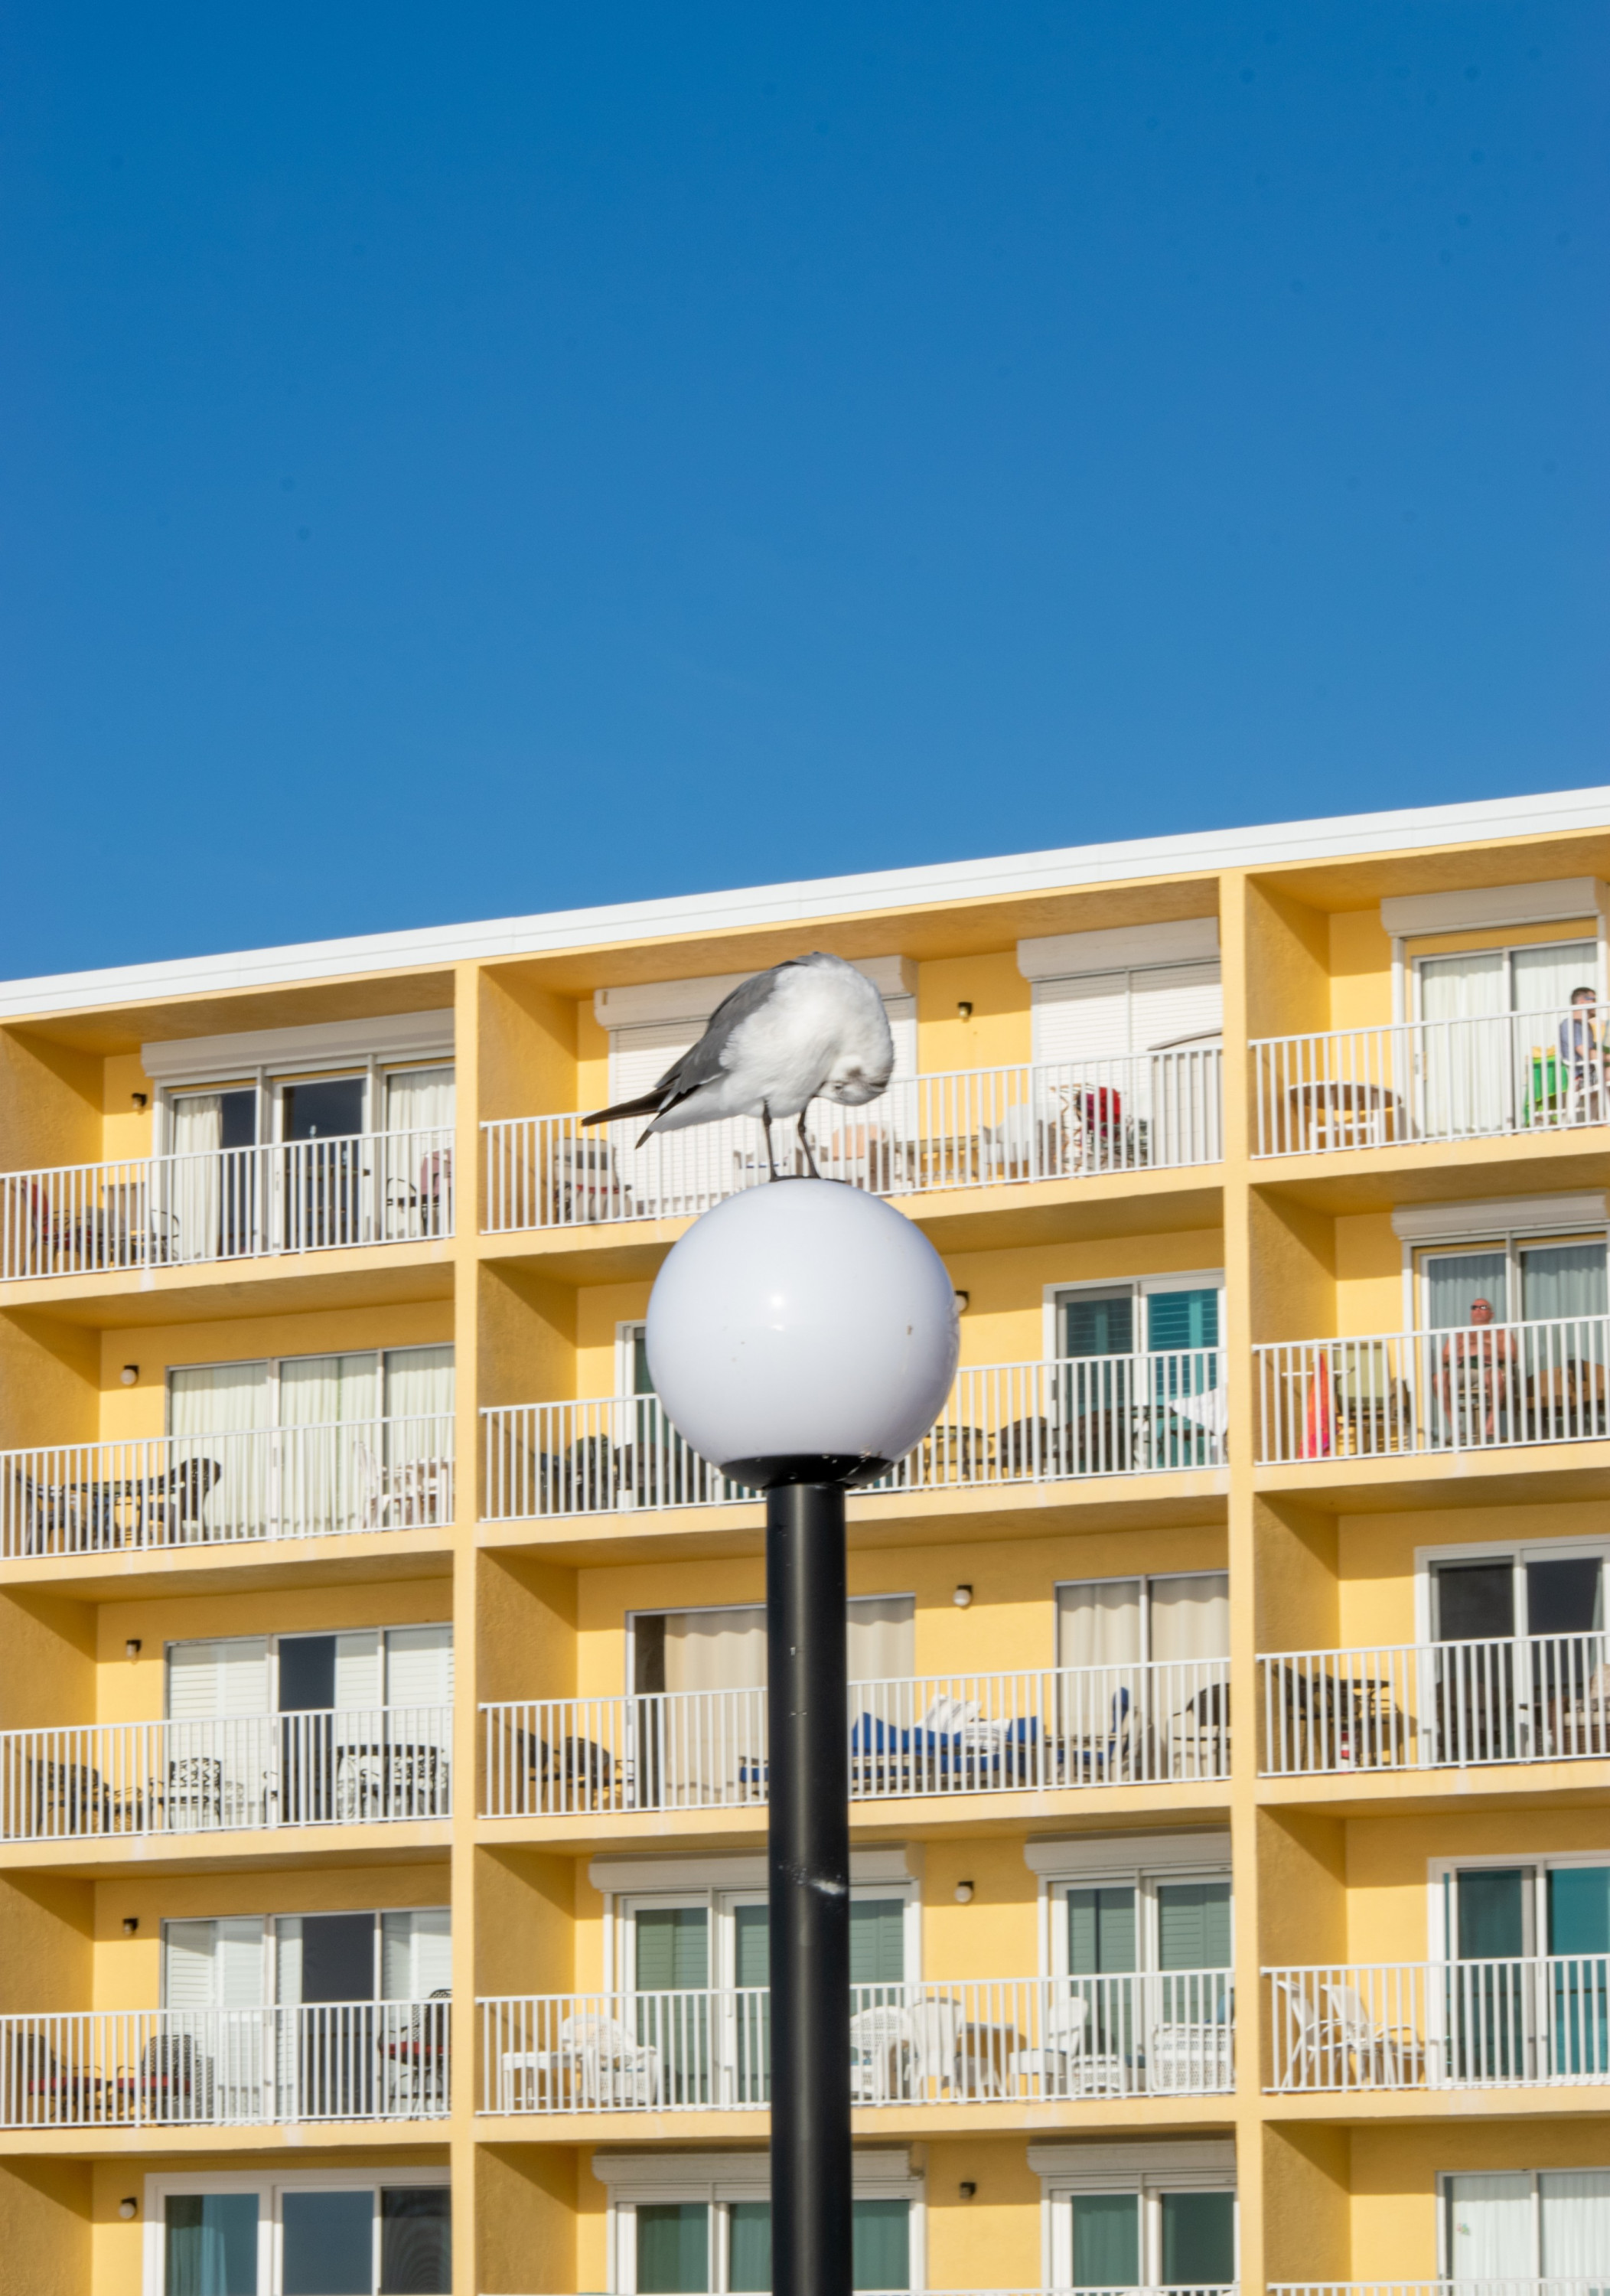 A seagull preens itself on the top of a light pole outside sunny condos next door to the Seaside Seabird Sanctuary.